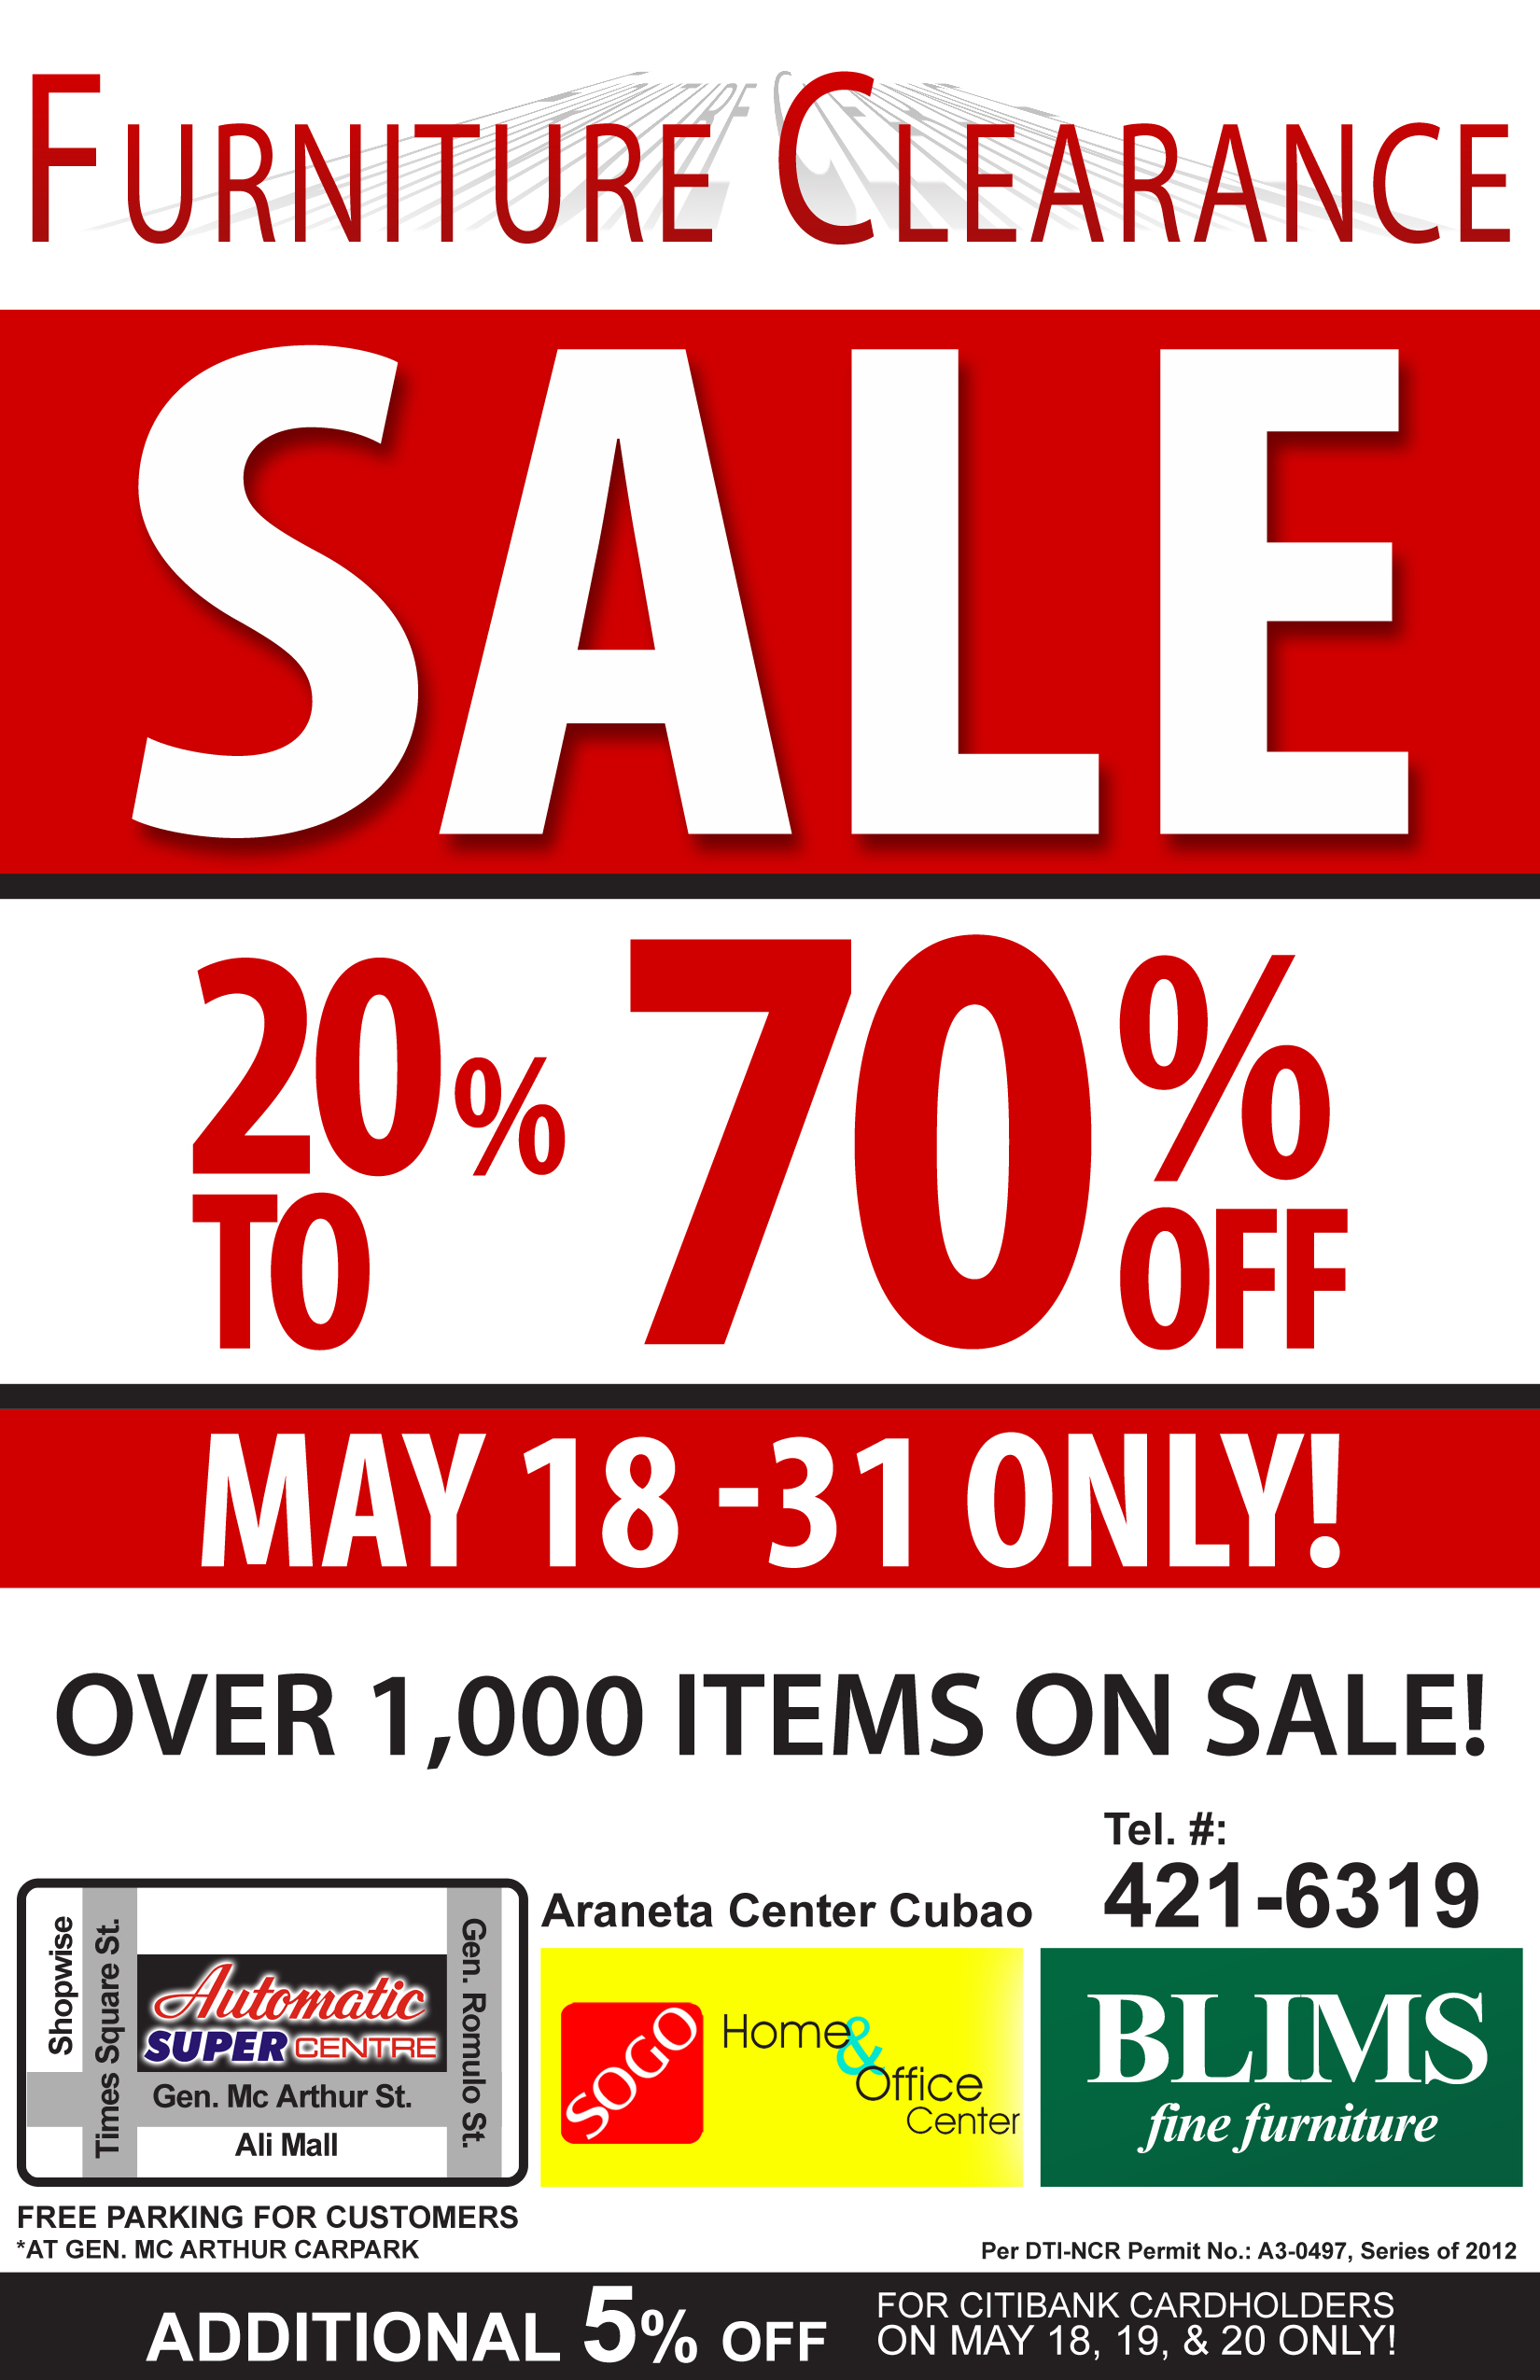 BLIMS & SOGO furniture clearance sale May 2012